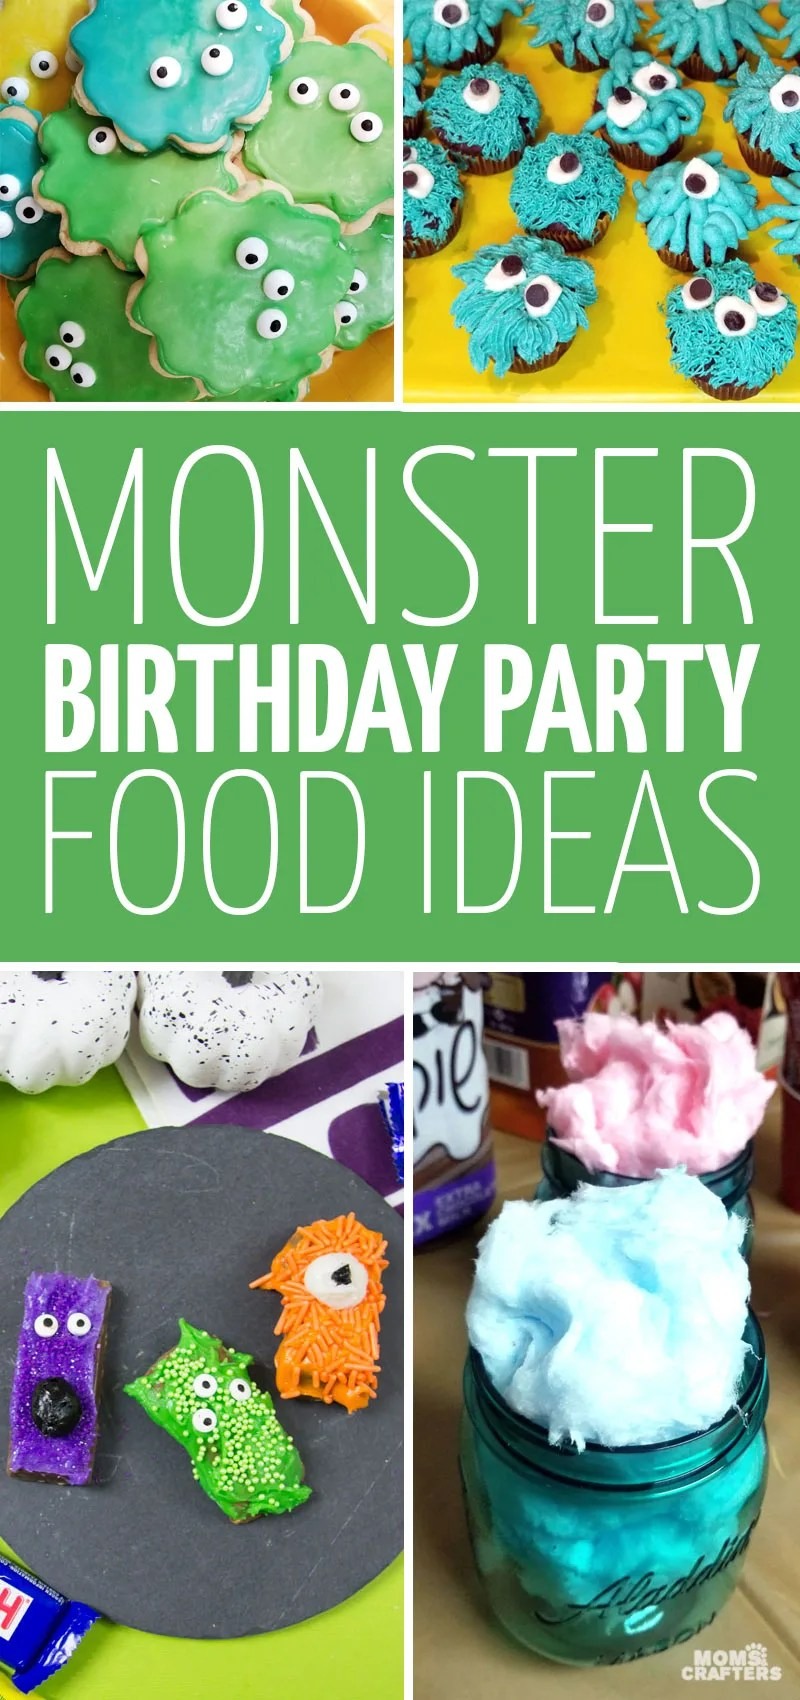 Cool Monster Birthday Party Food Ideas Moms And Crafters